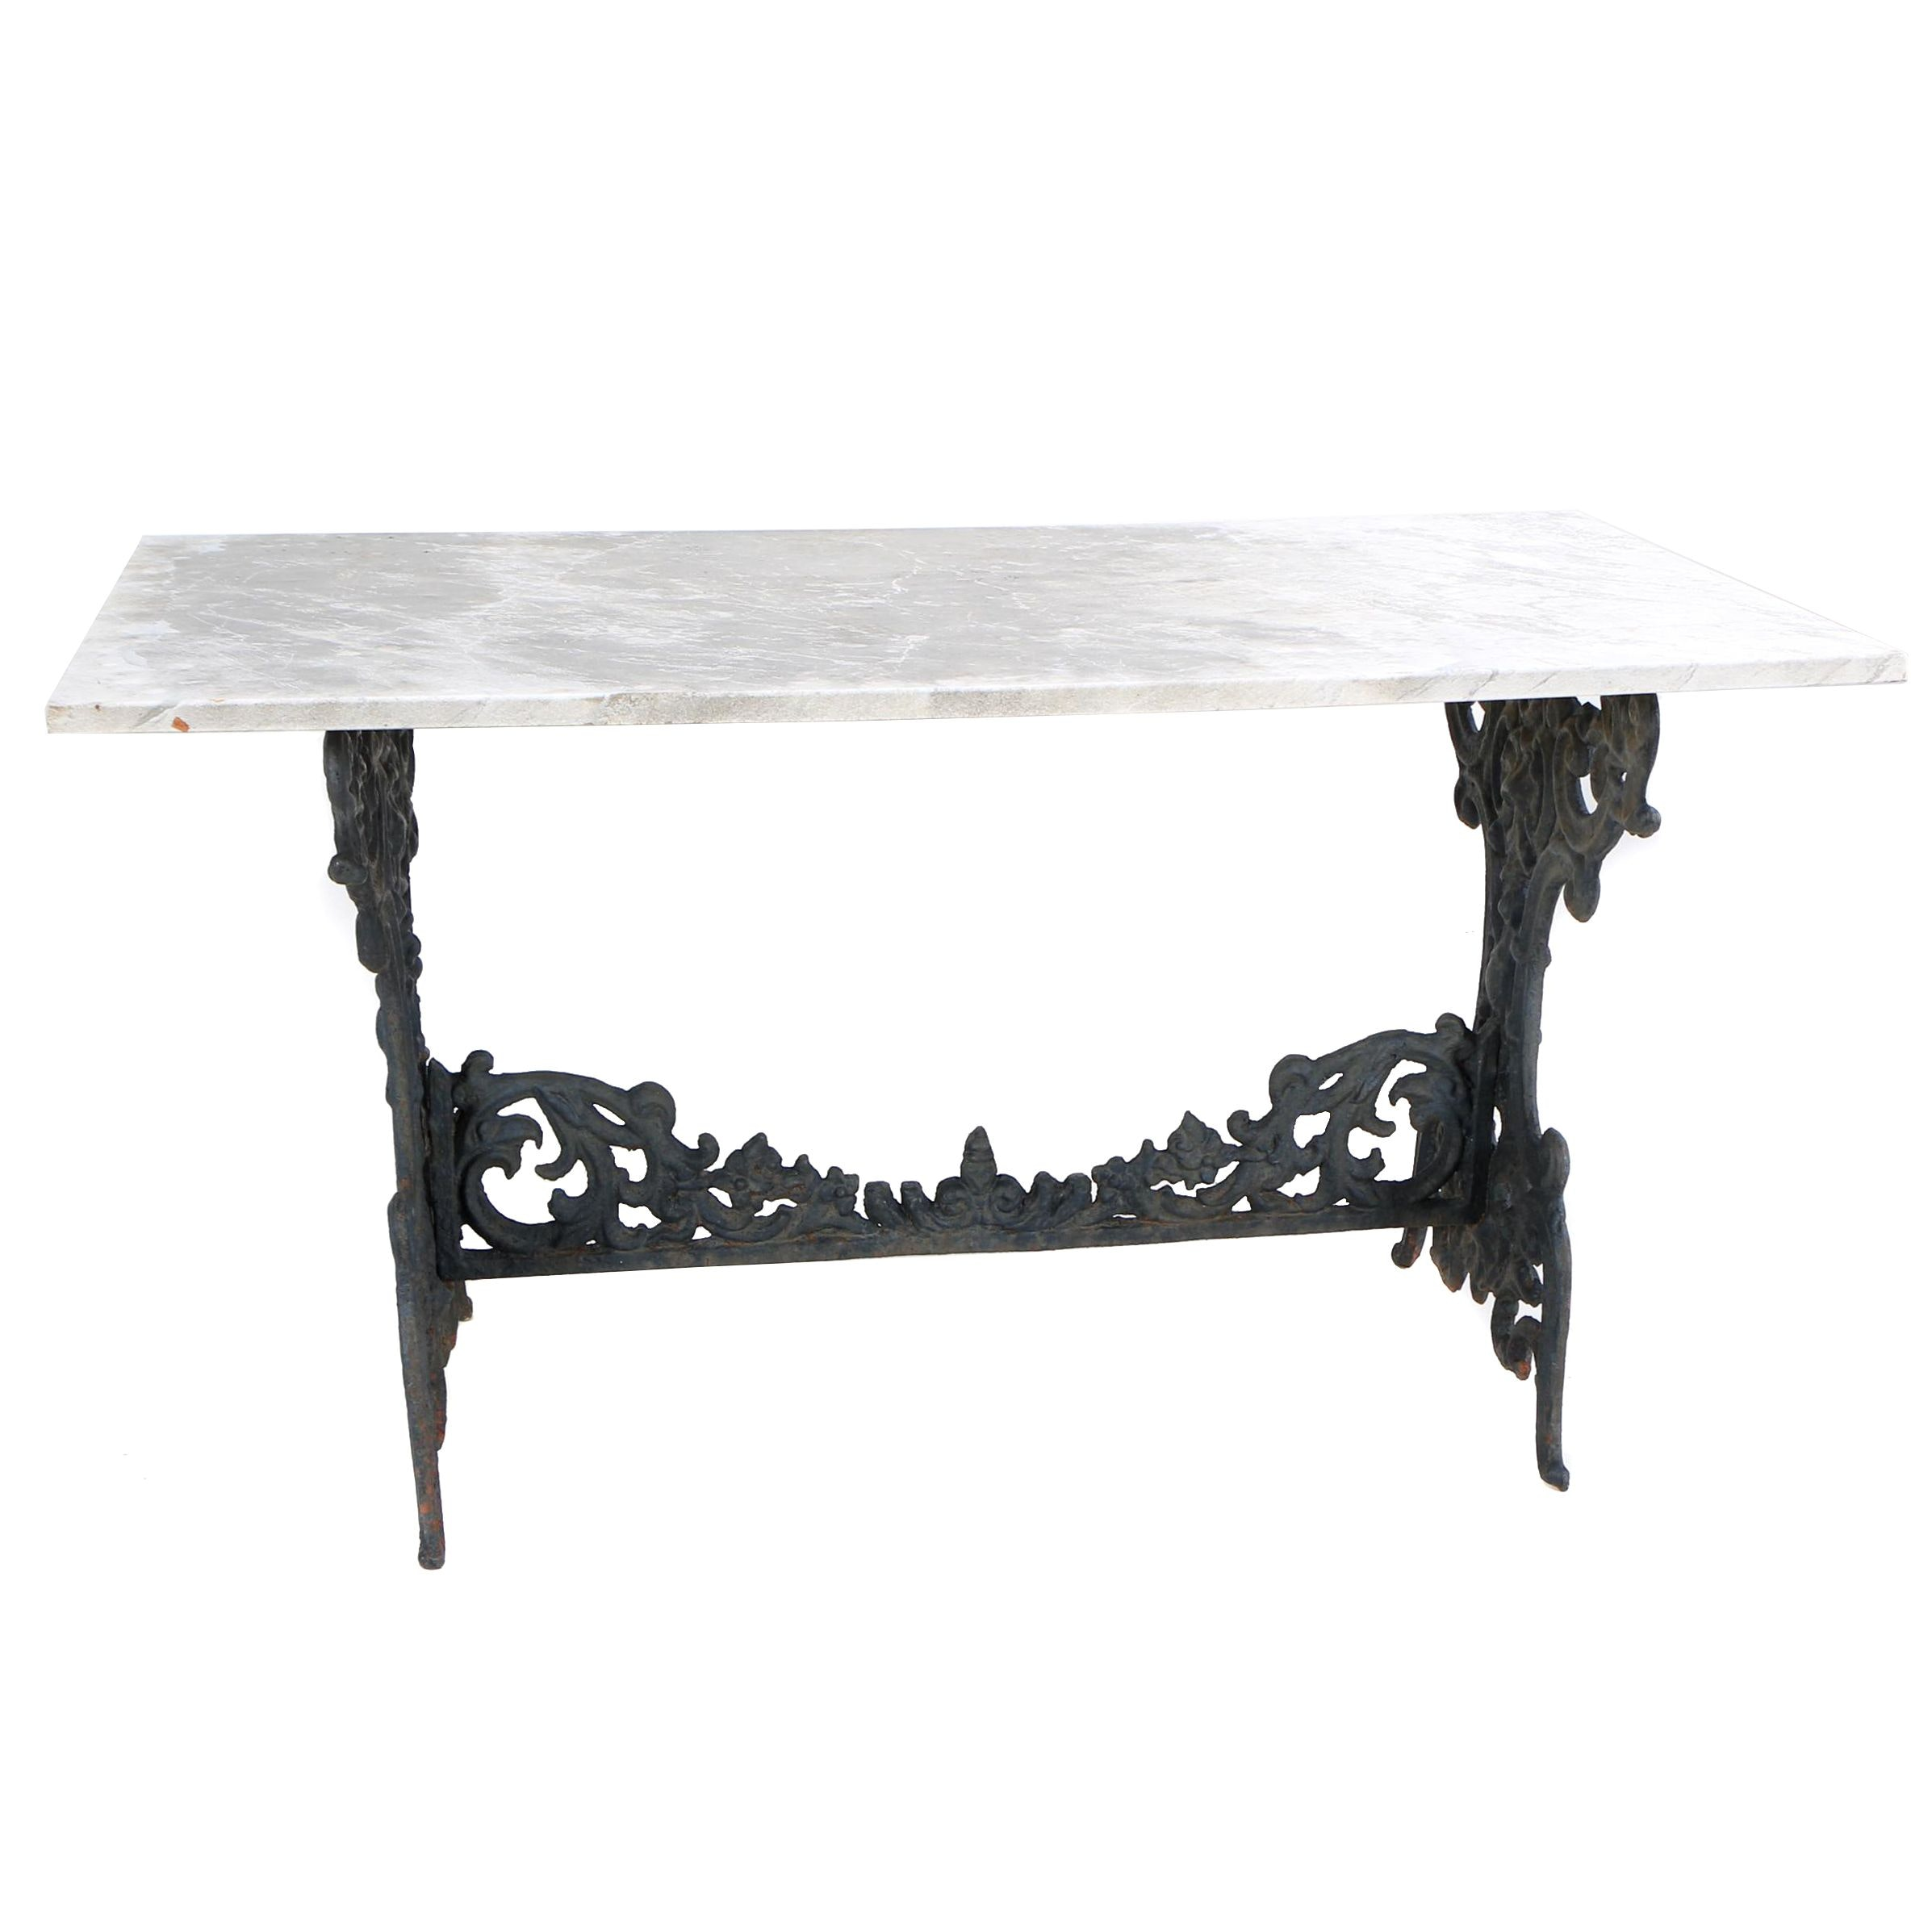 White Marble Patio Table with Black Painted Cast Iron Base